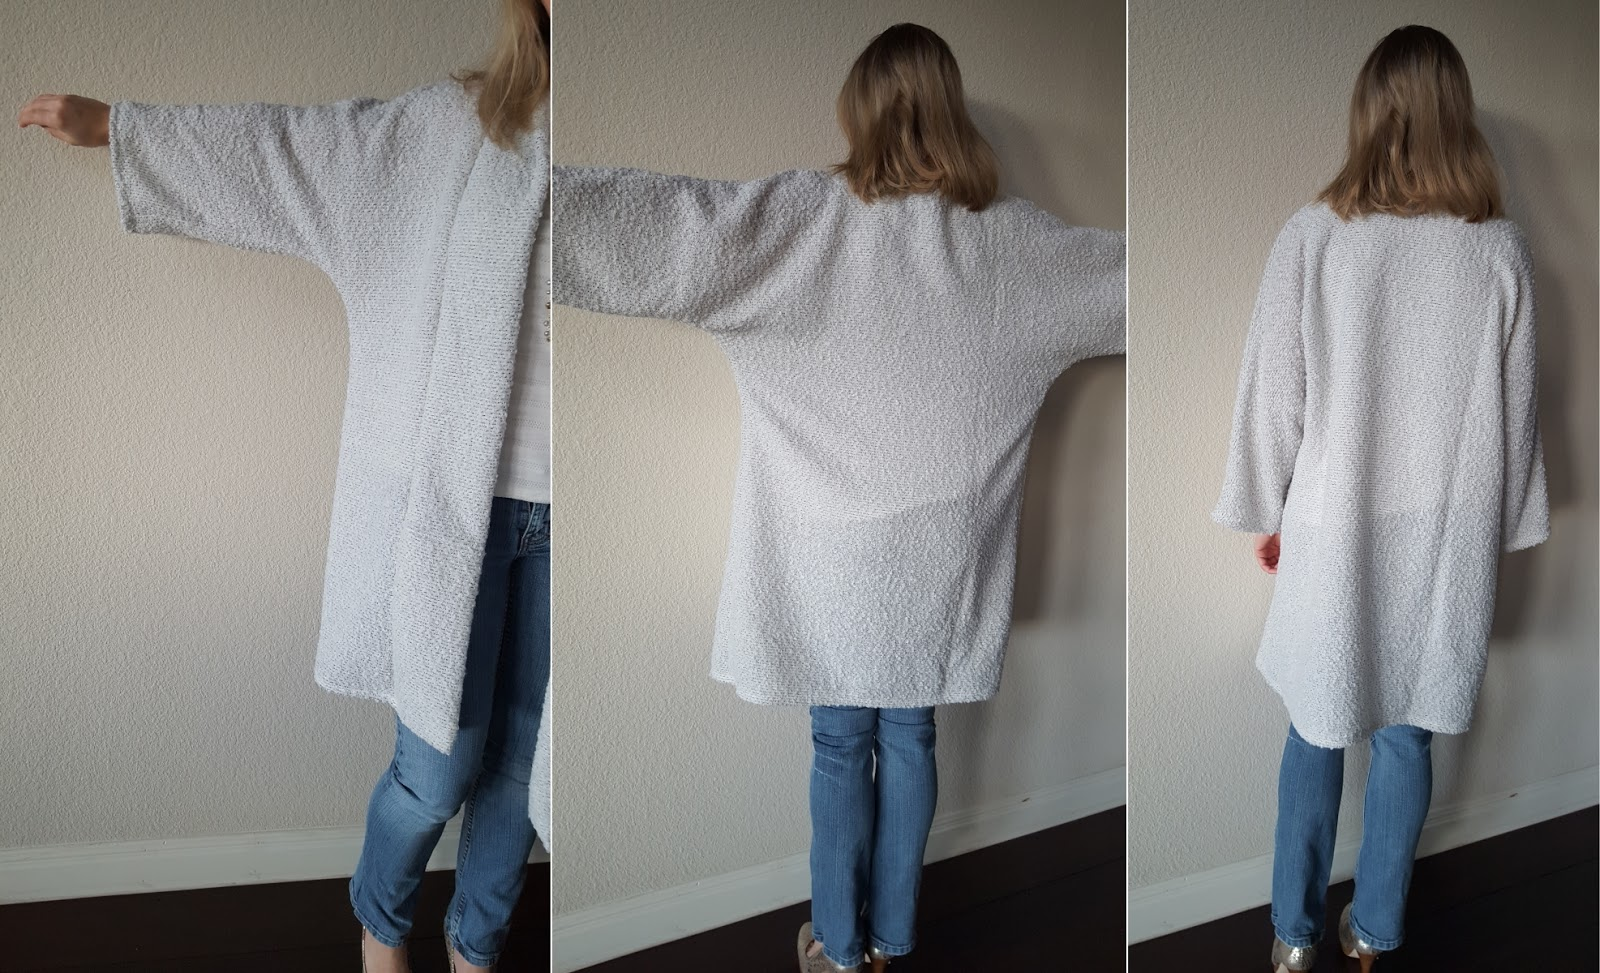 Sleeve and back views of cardigan outerwear from M6802 sewing pattern